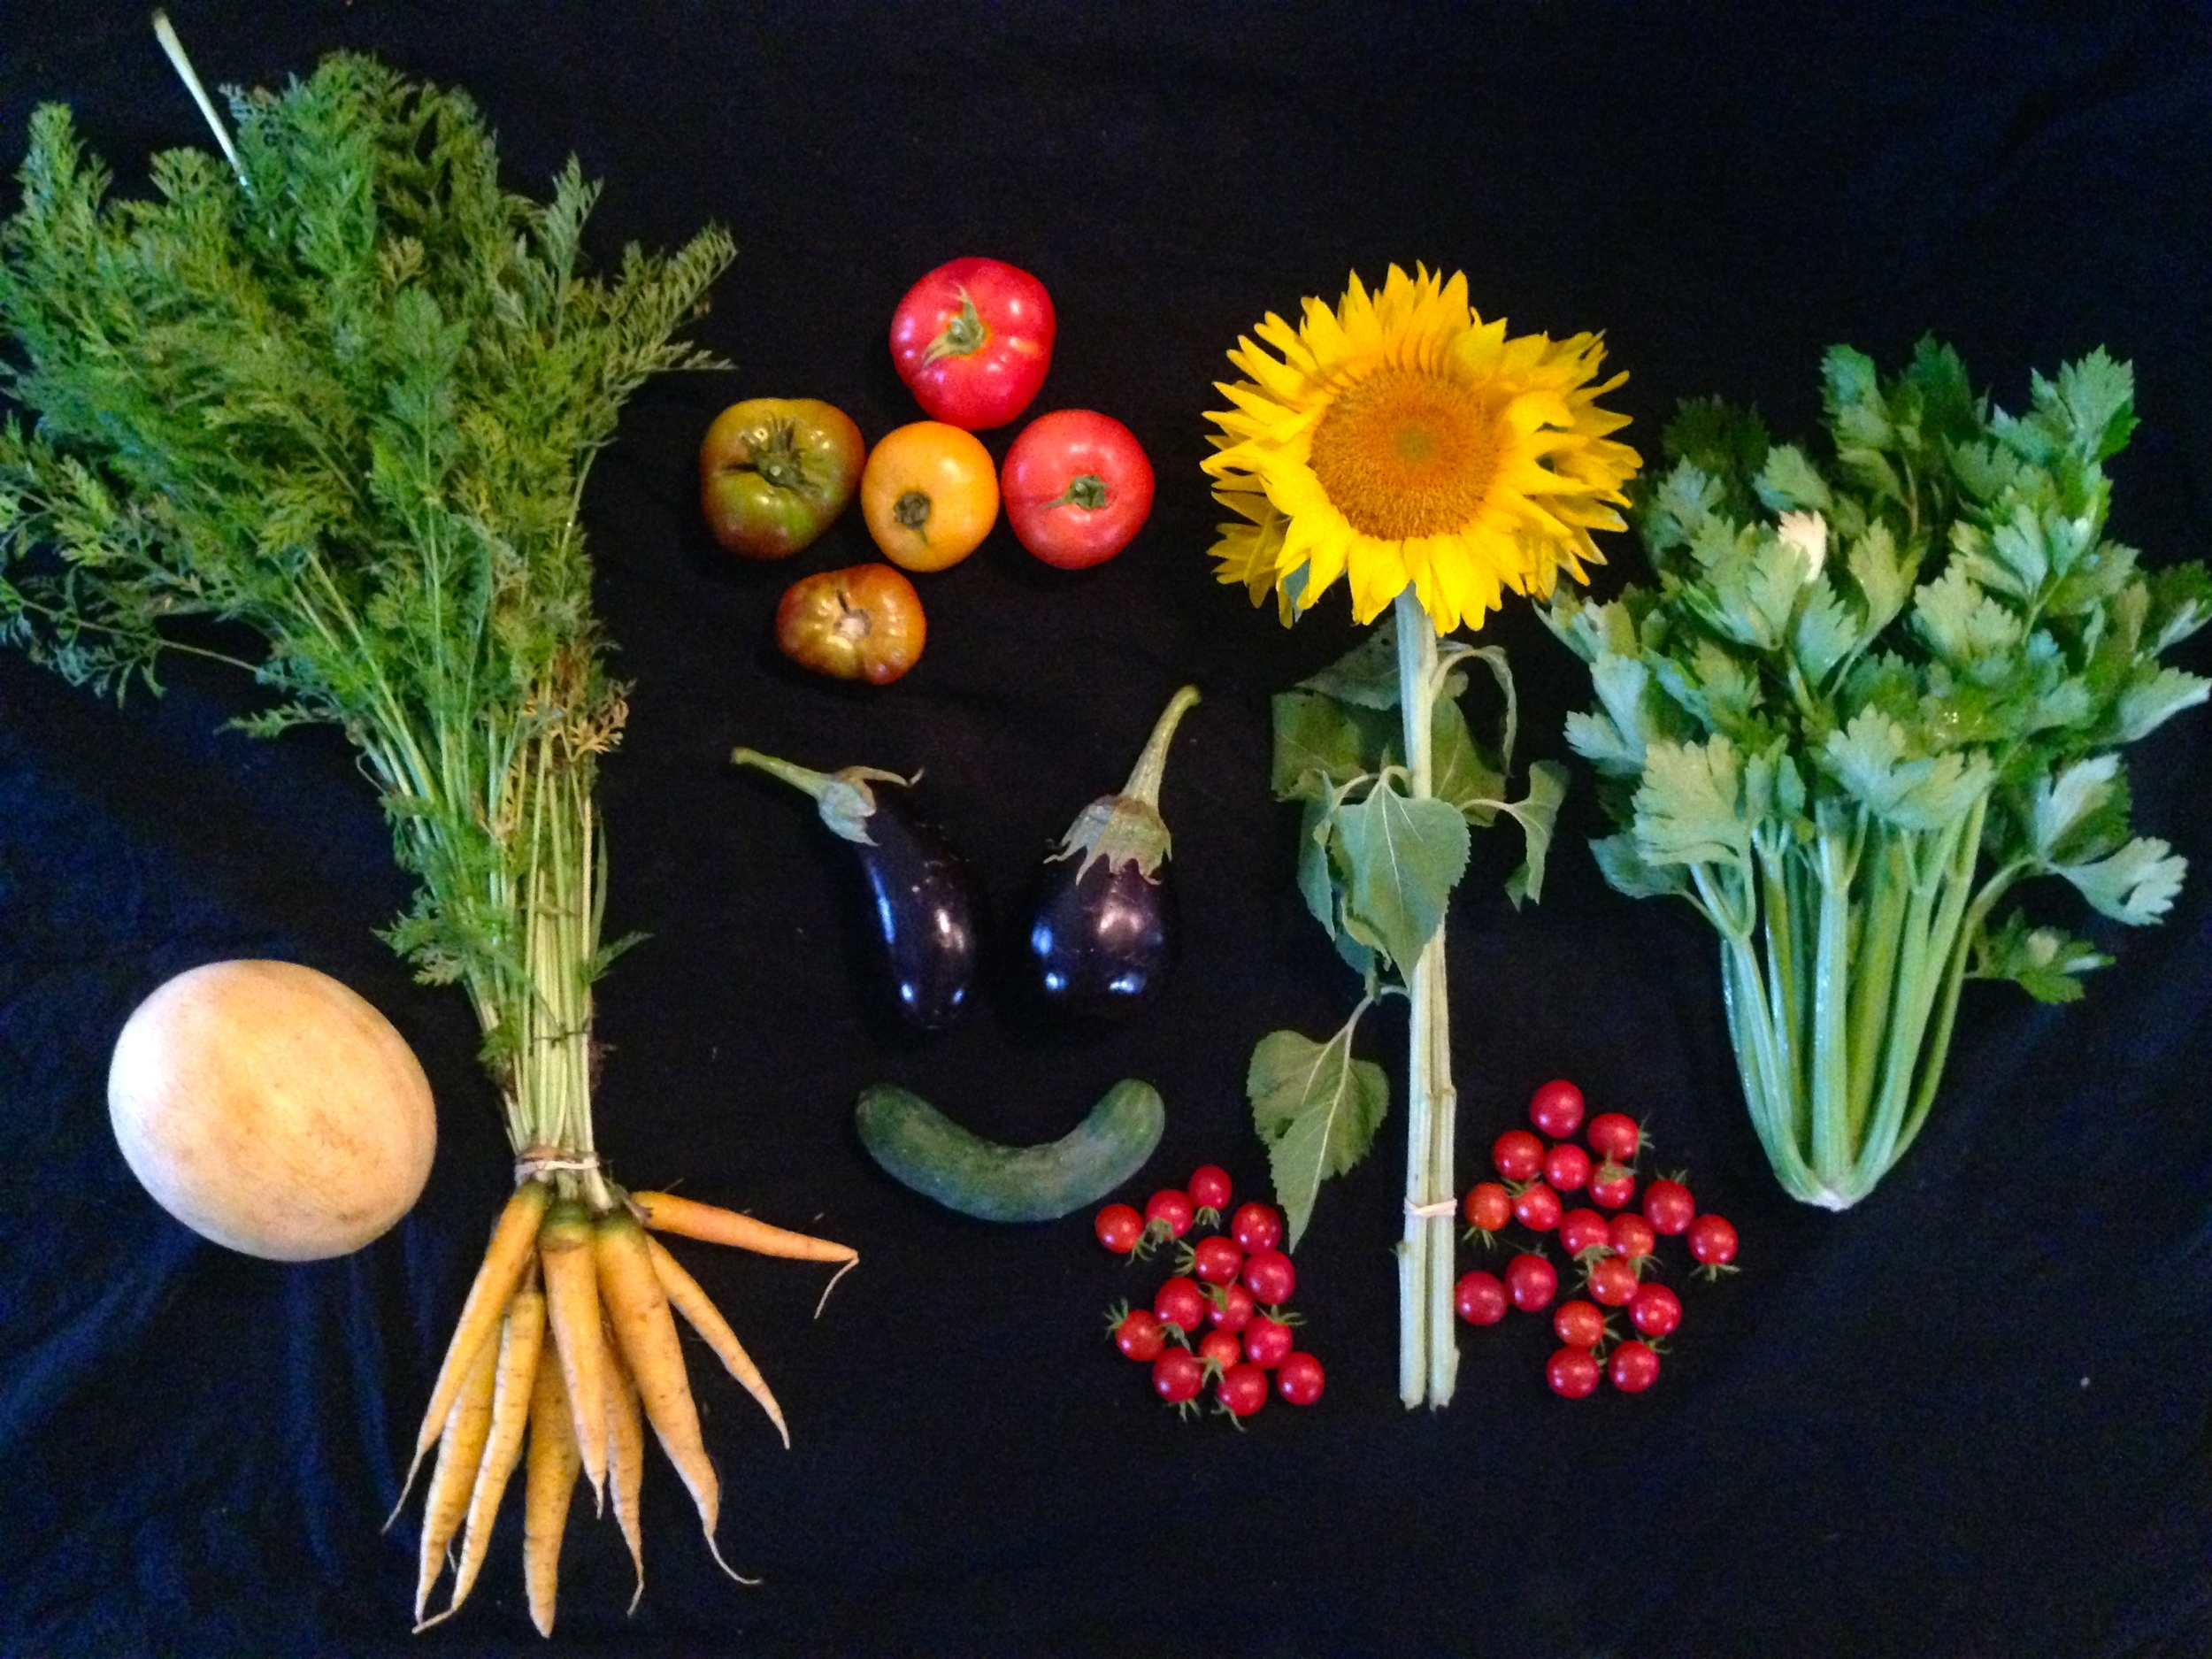 Week 10: cantaloupe, carrots, cucumber, eggplant, cherry tomatoes, sunflowers, celery, slicing tomatoes